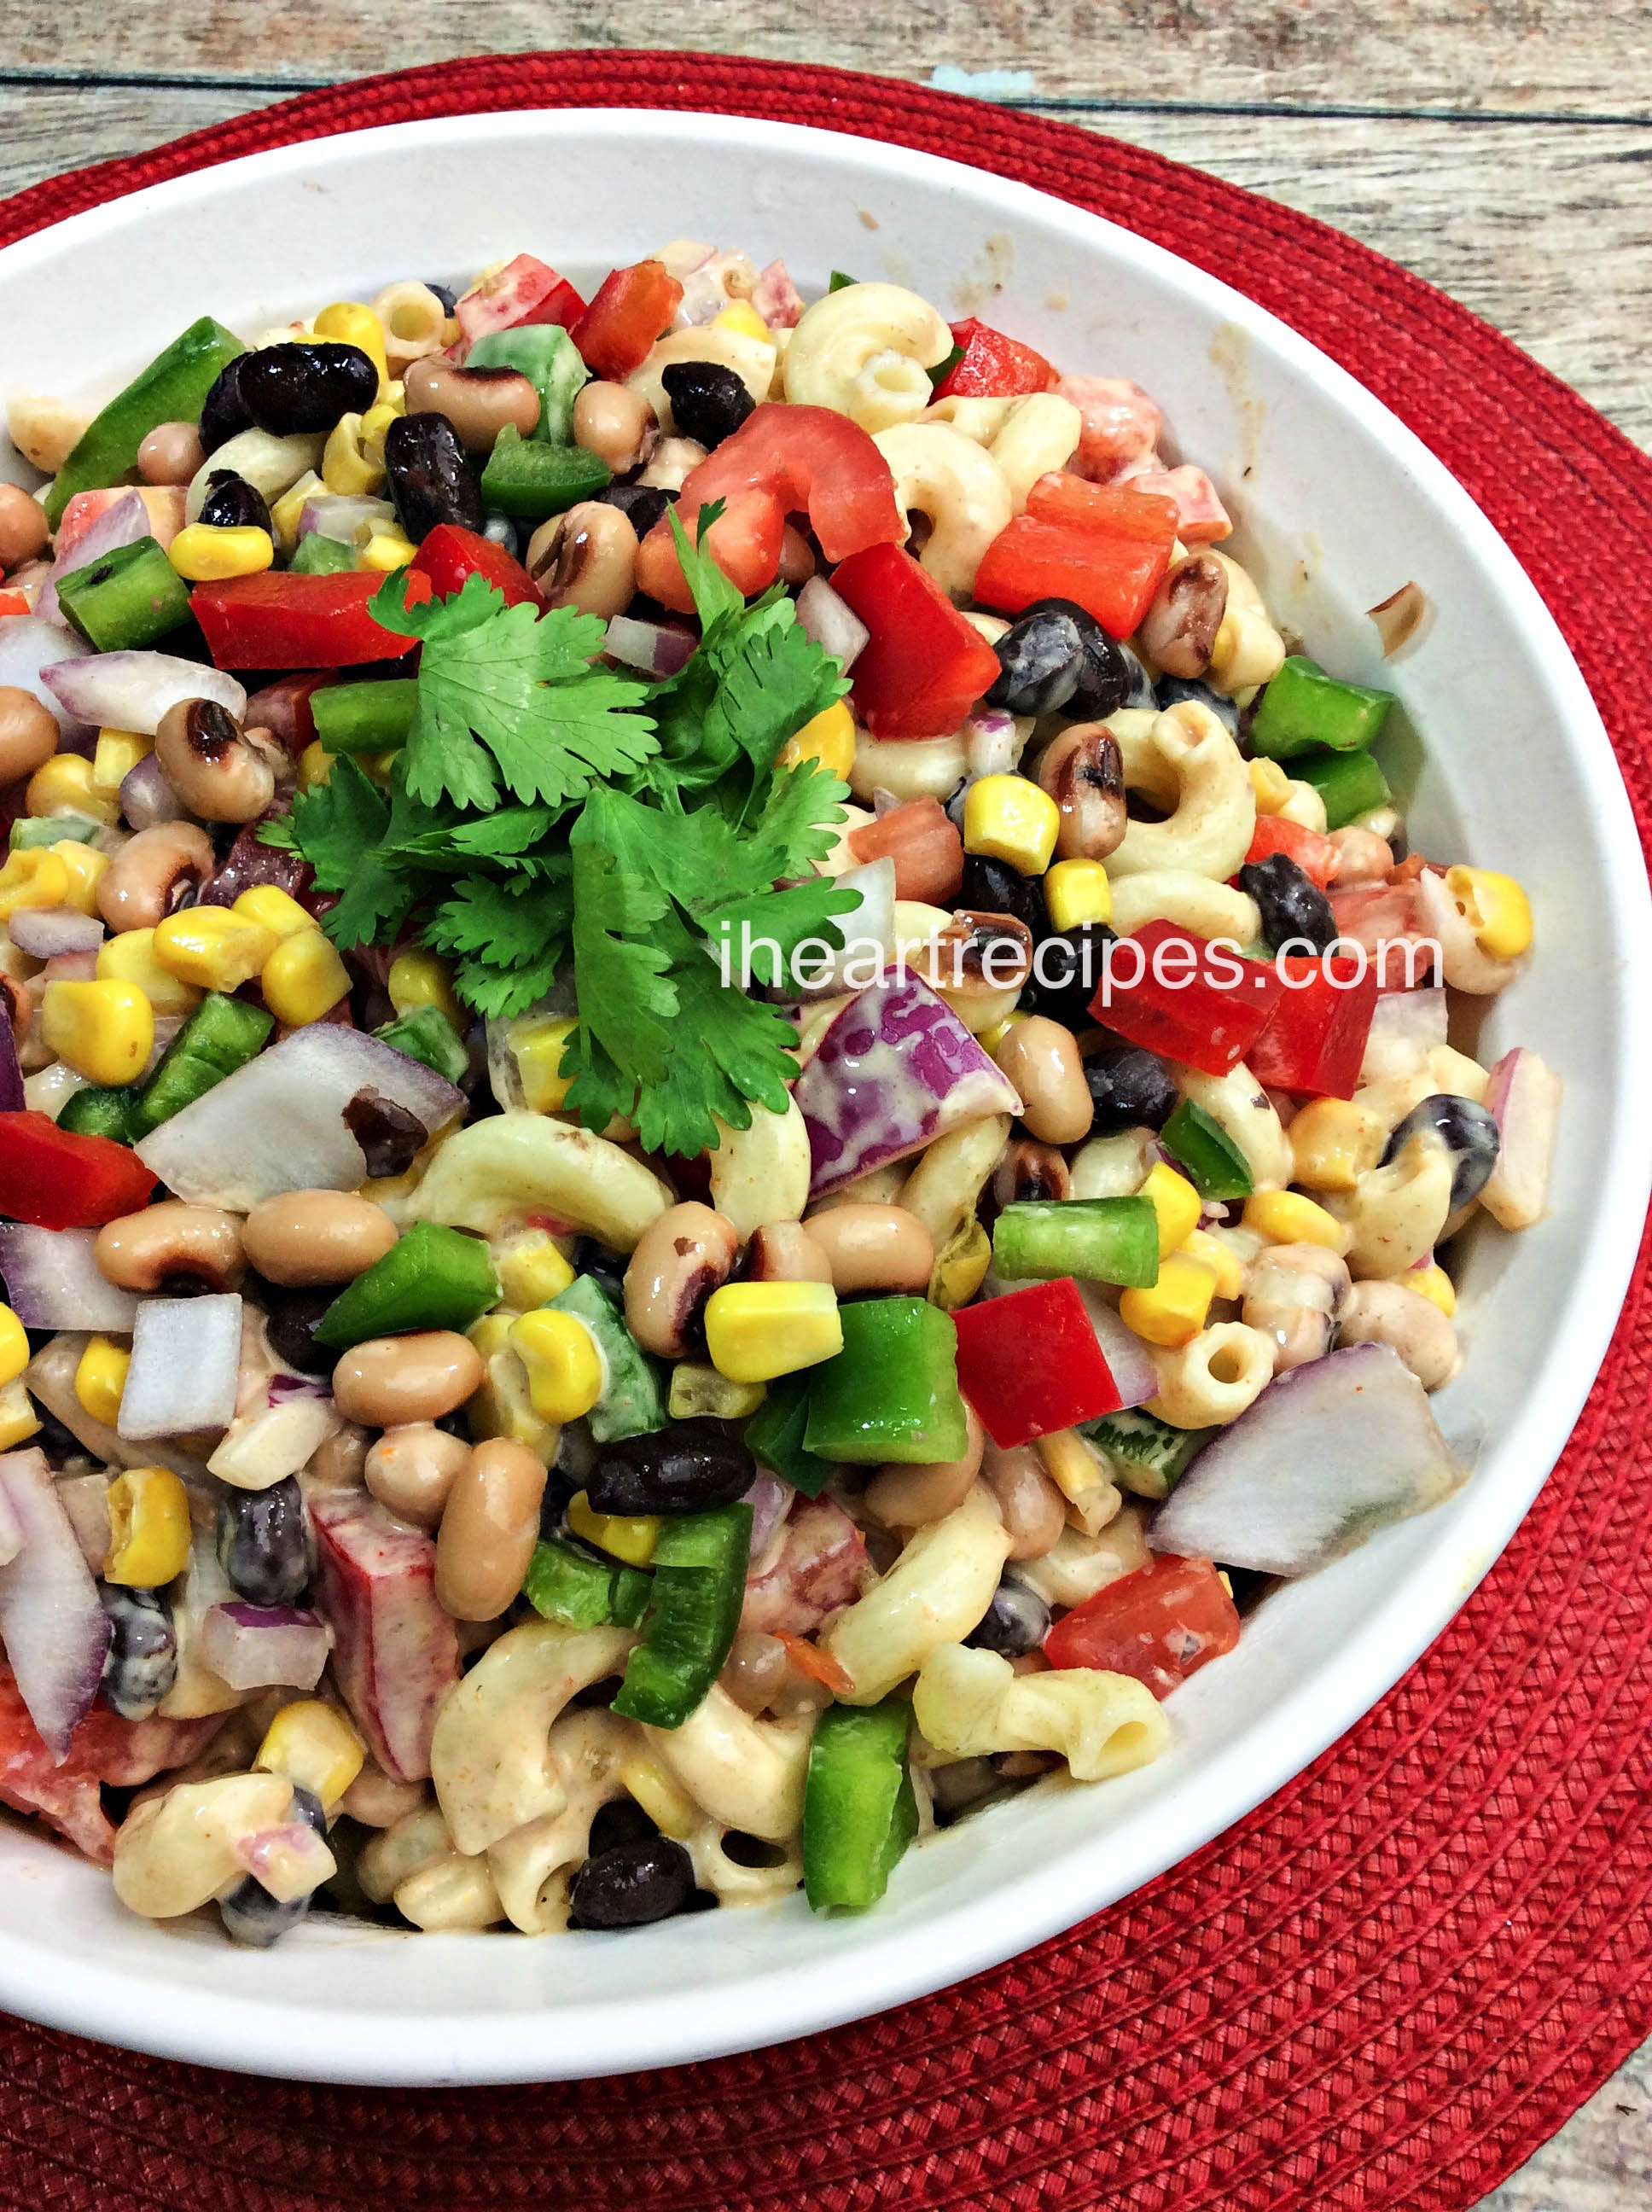 Texas Caviar Macaroni Salad | I Heart Recipes